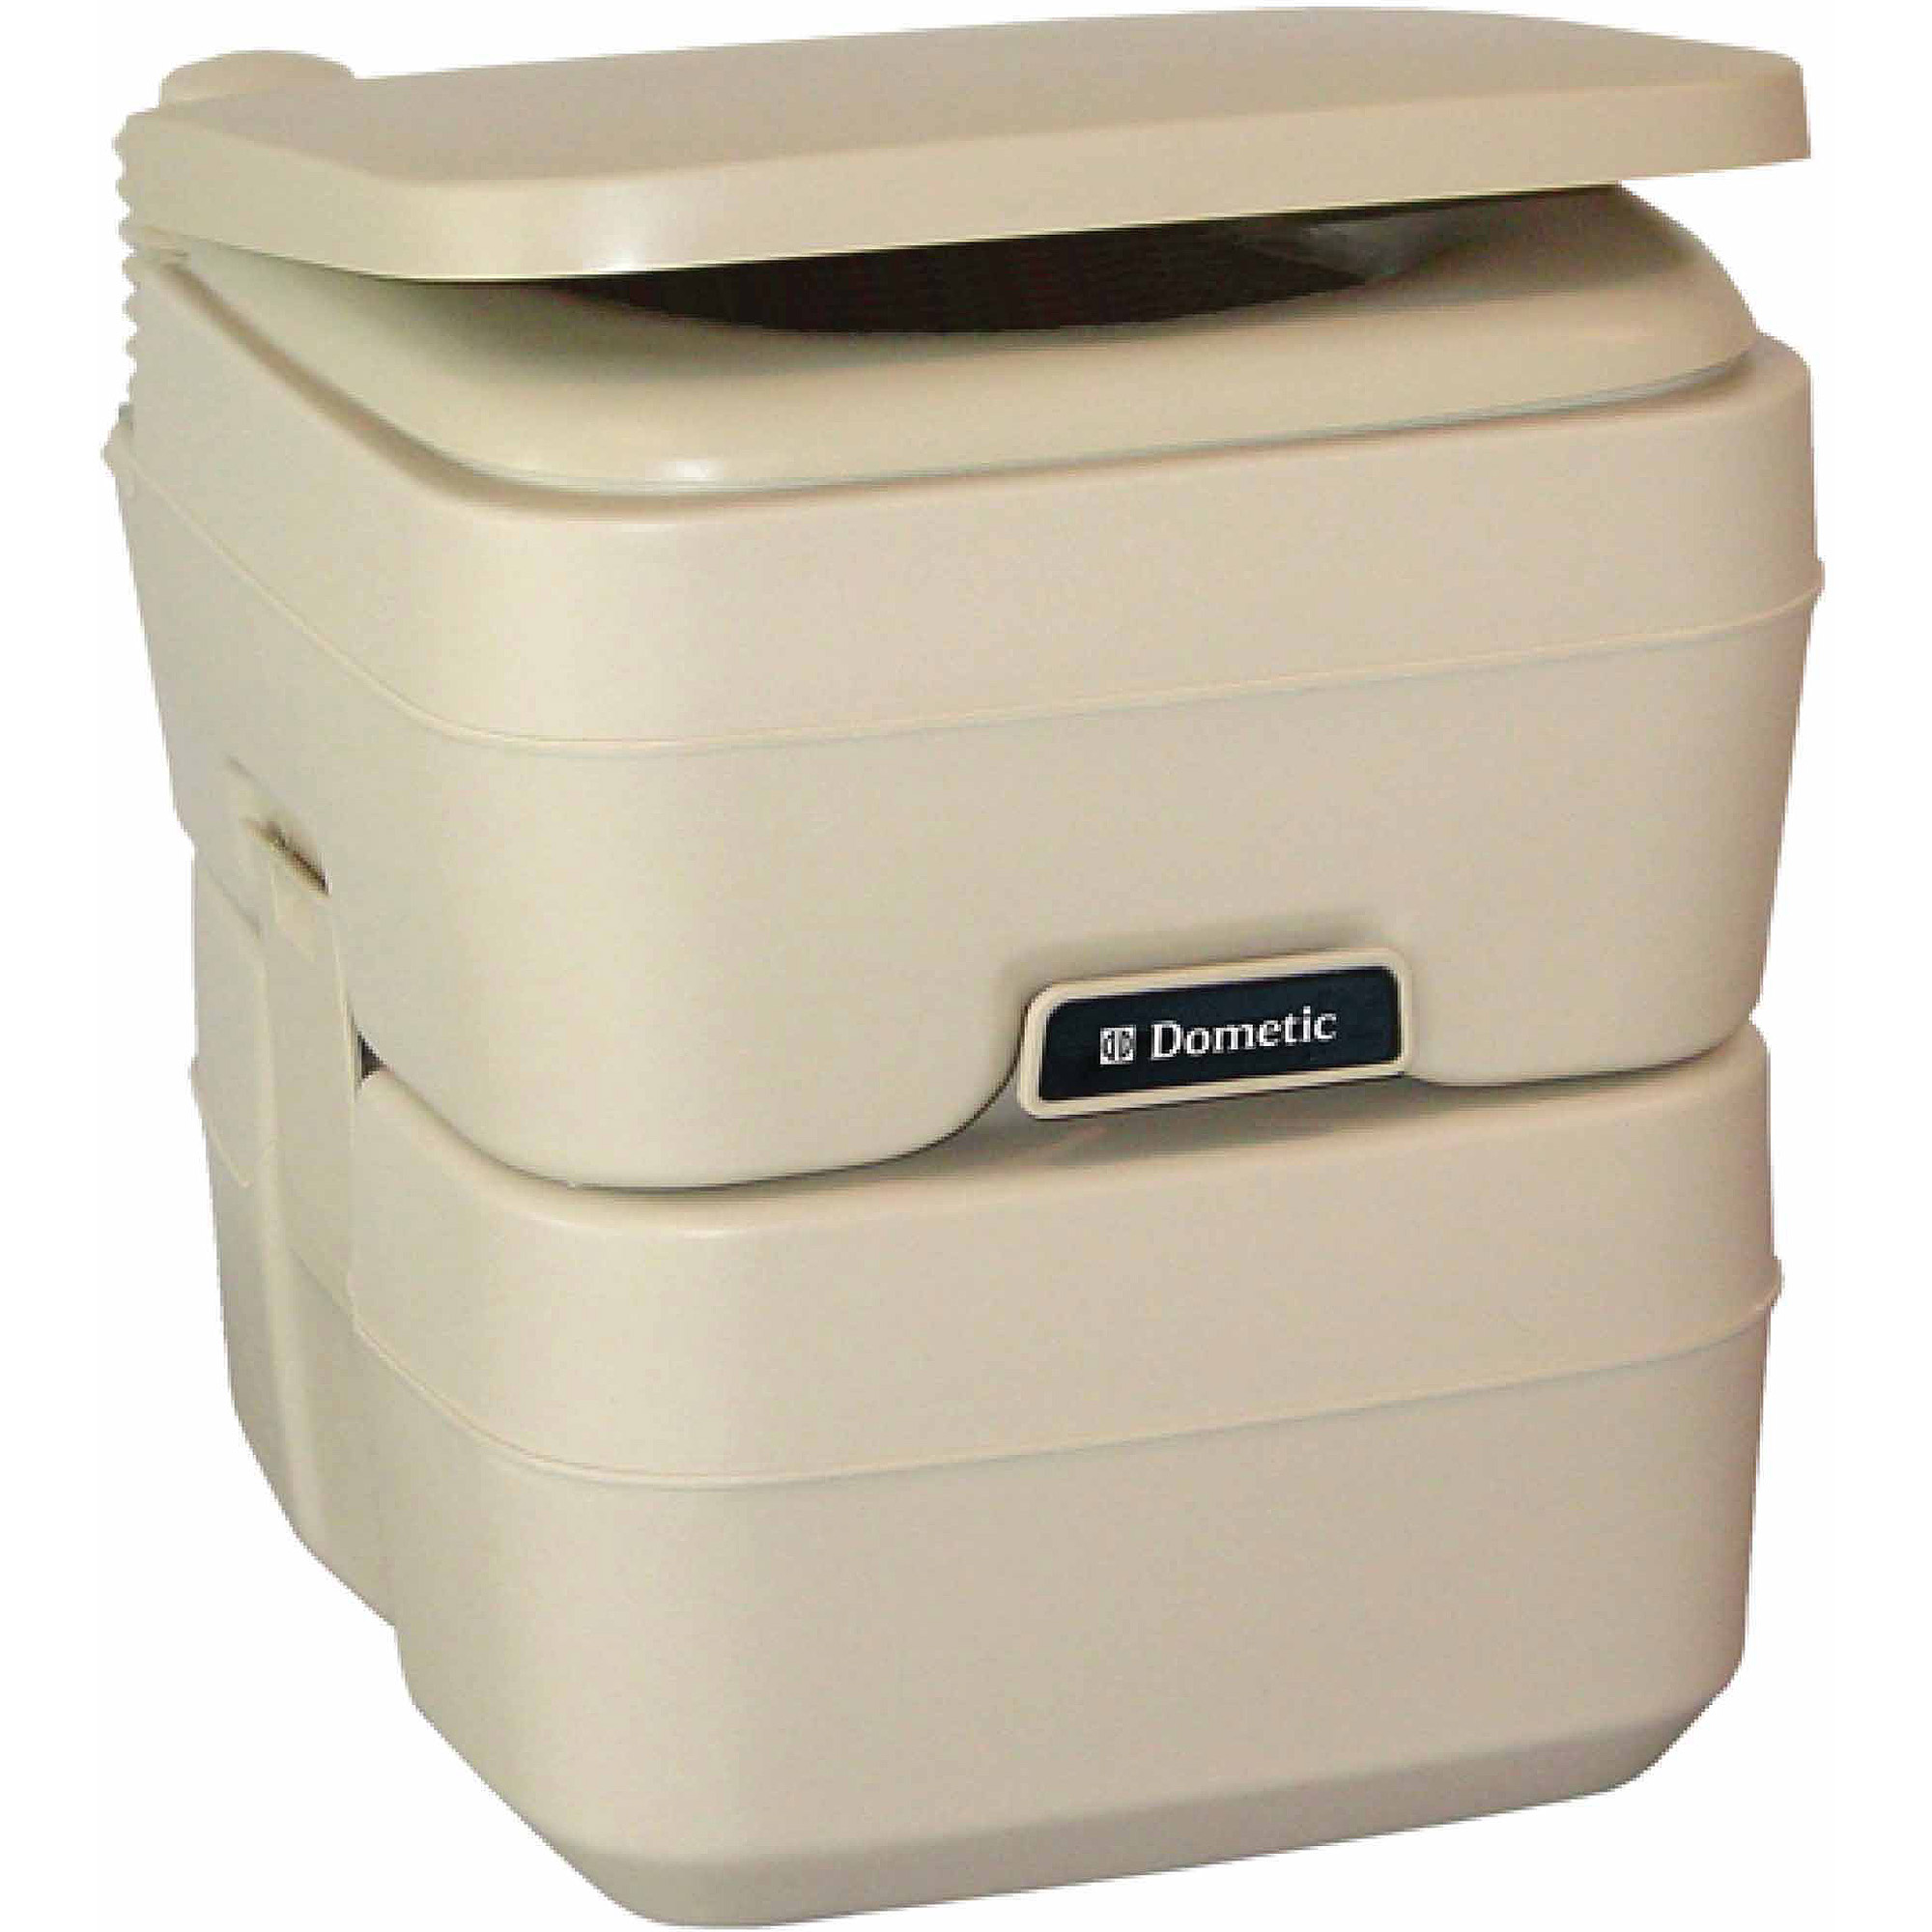 SeaLand 5.0 Gallon SaniPottie 965 Portable Toilet with Mounting Brackets